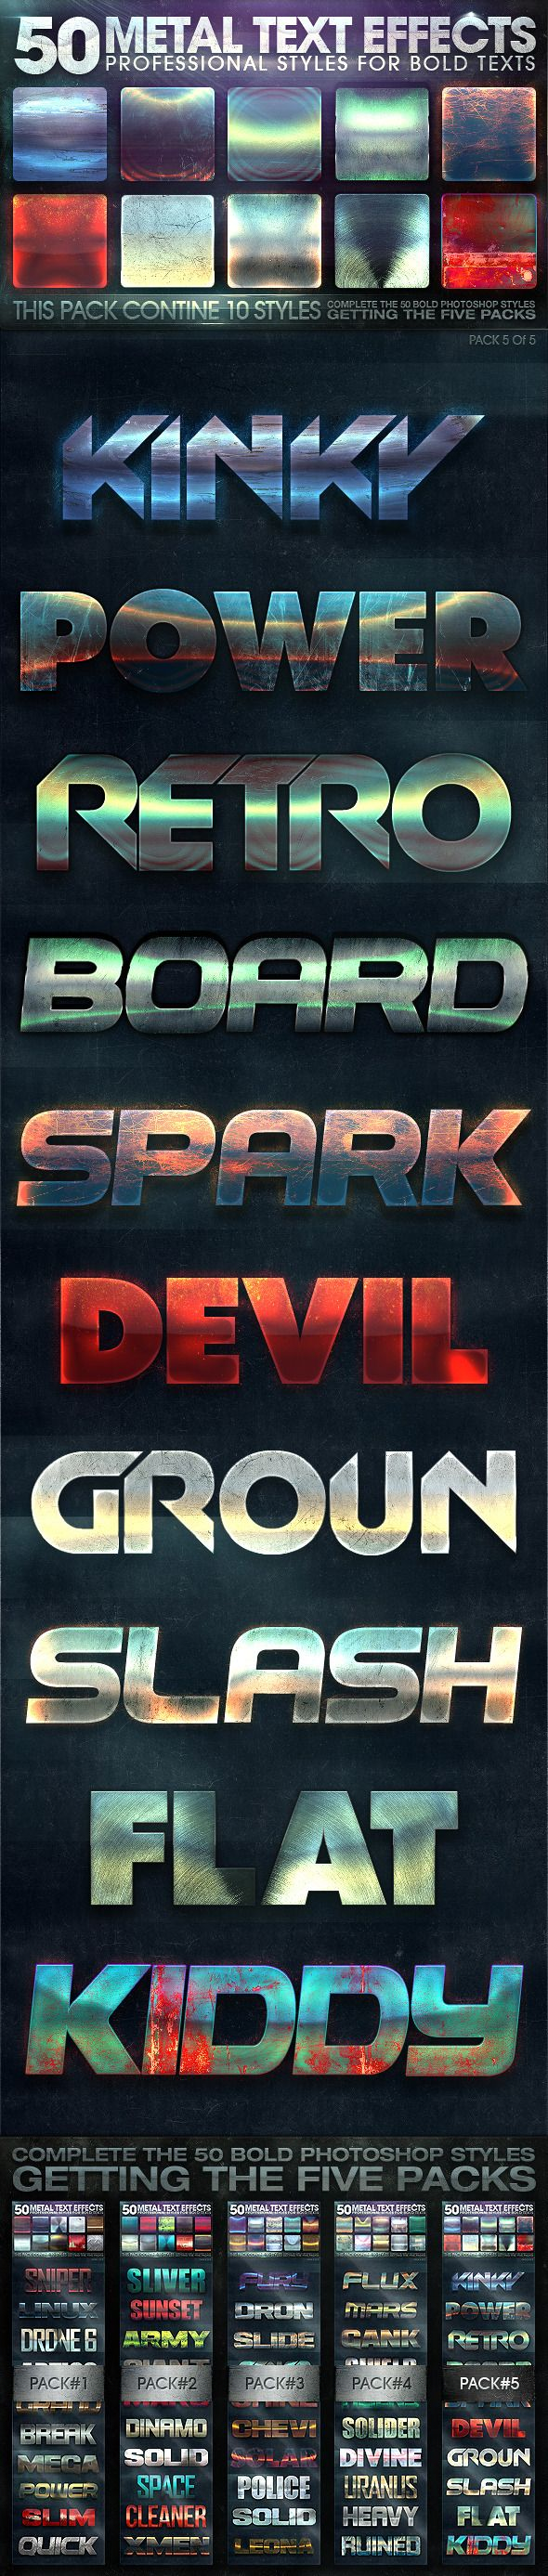 50 Metal Text Effects 5 of 5 #photoshop Download here: http://graphicriver.net/item/50-metal-text-effects-5-of-5/10736602?ref=ksioks